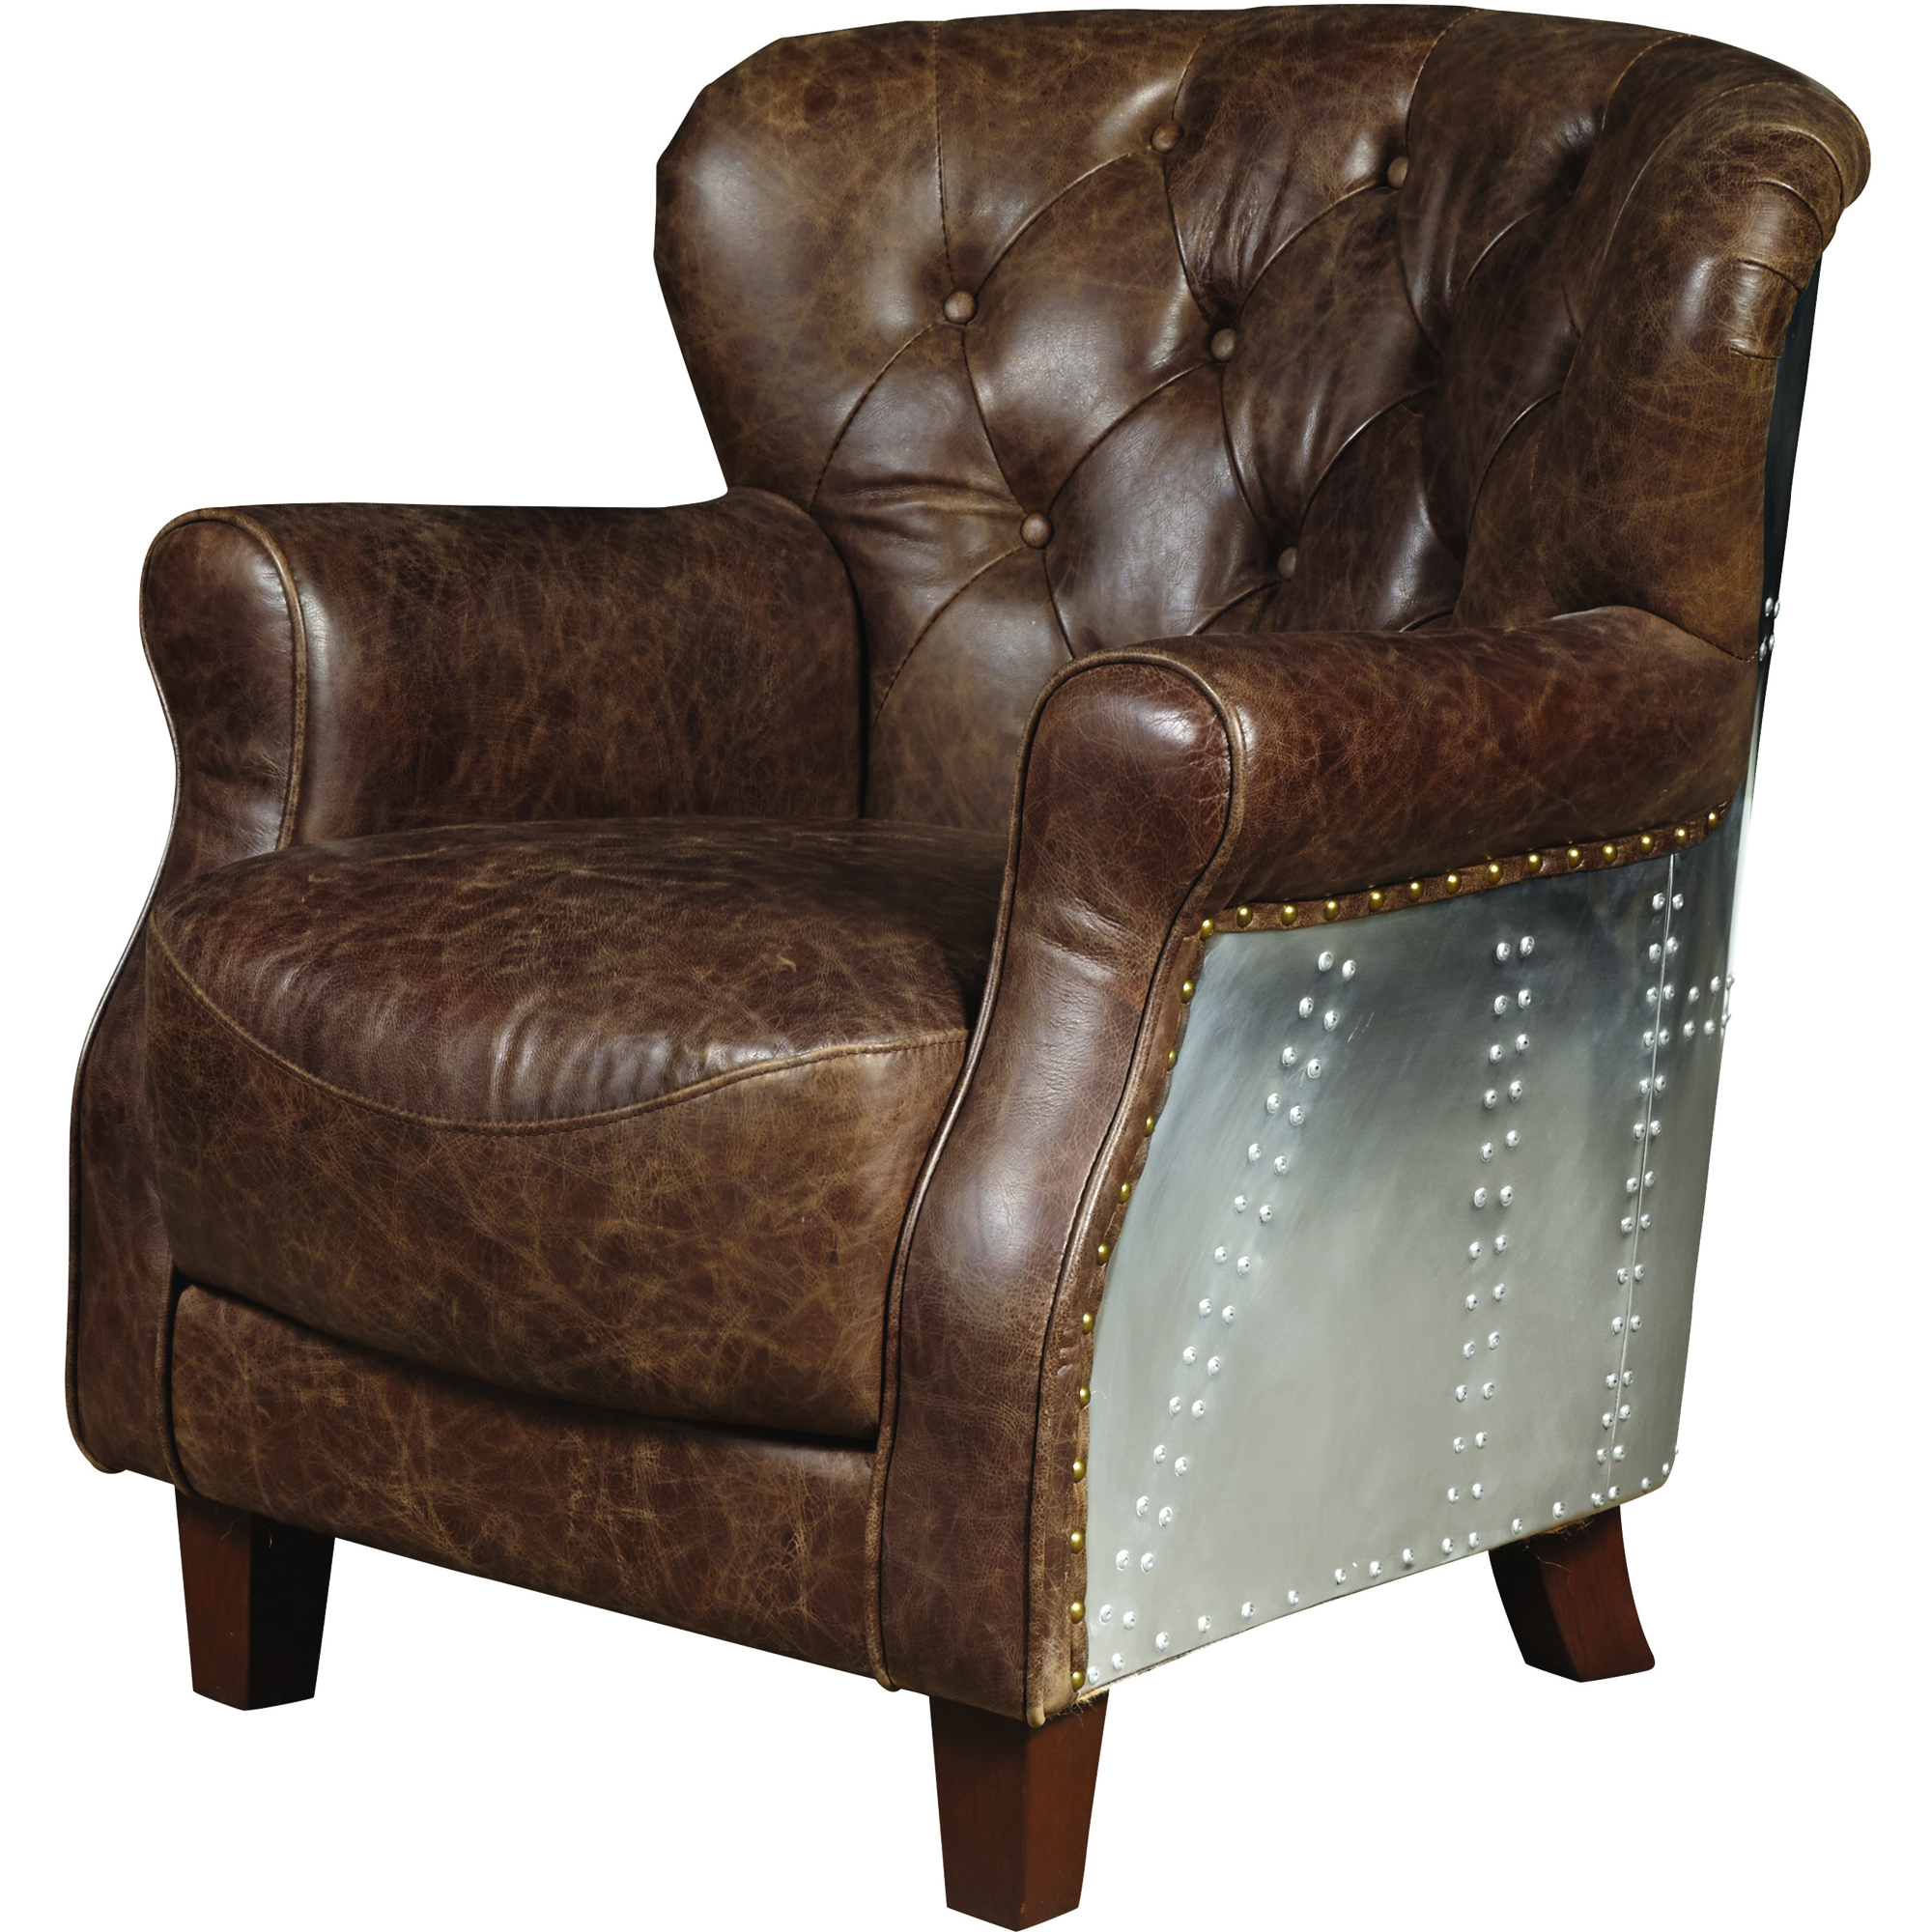 Tufted Arm Chair, Leather Accent (View 18 of 20)